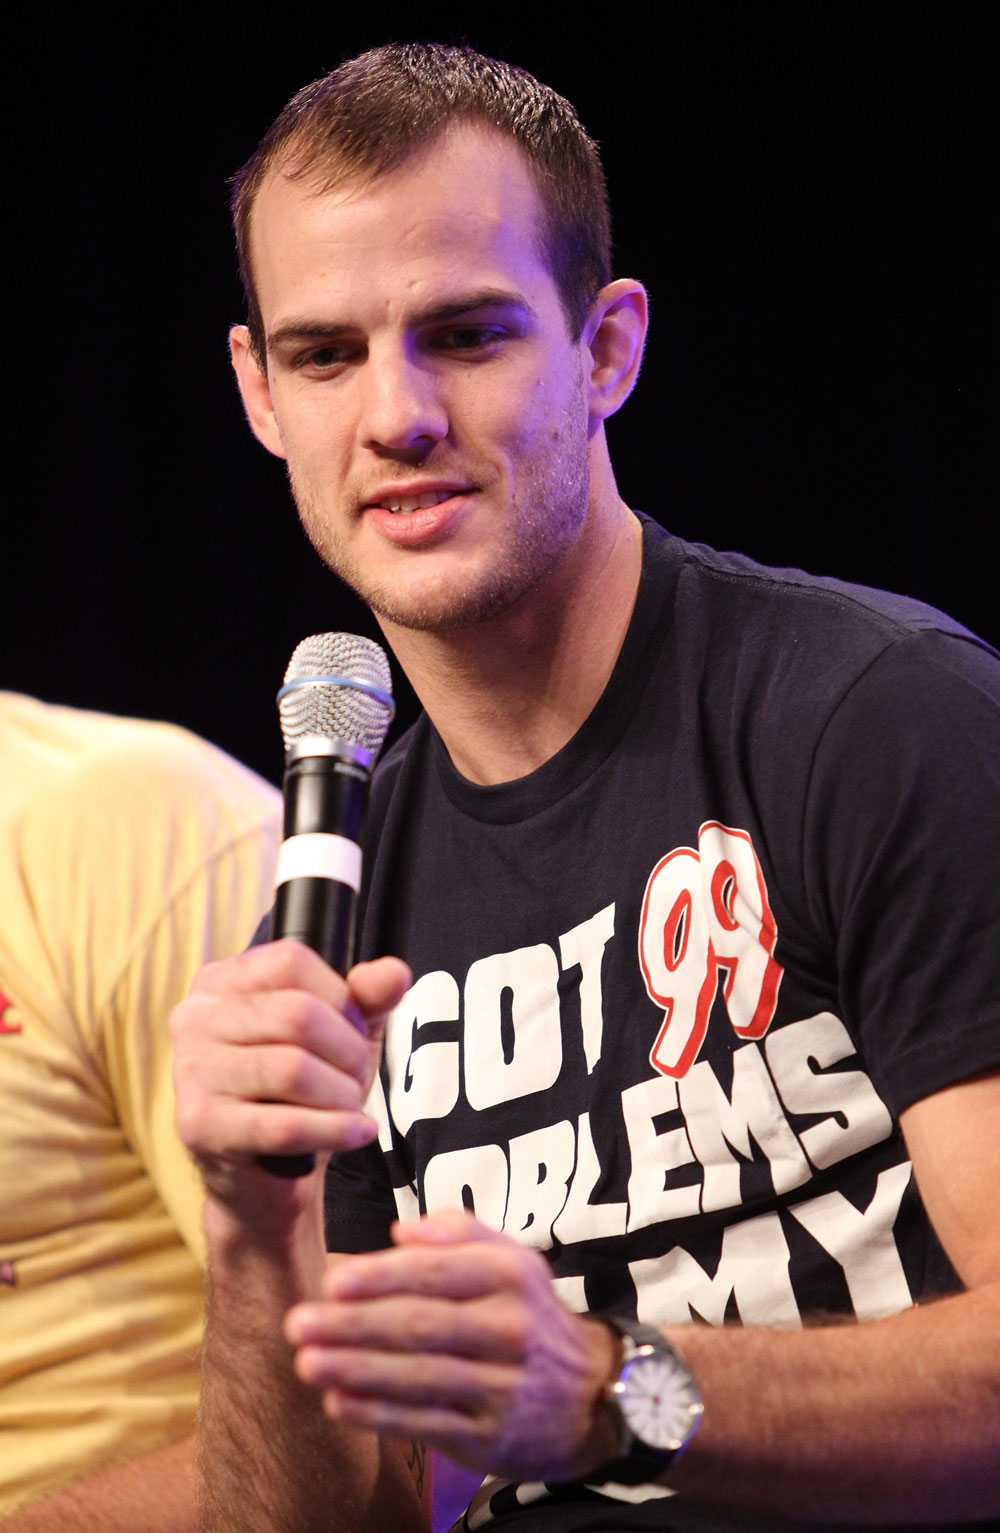 UFC fighter Cole Miller attends a Q&A session with former cast members of The Ultimate Fighter on the main stage at the UFC Fan Expo